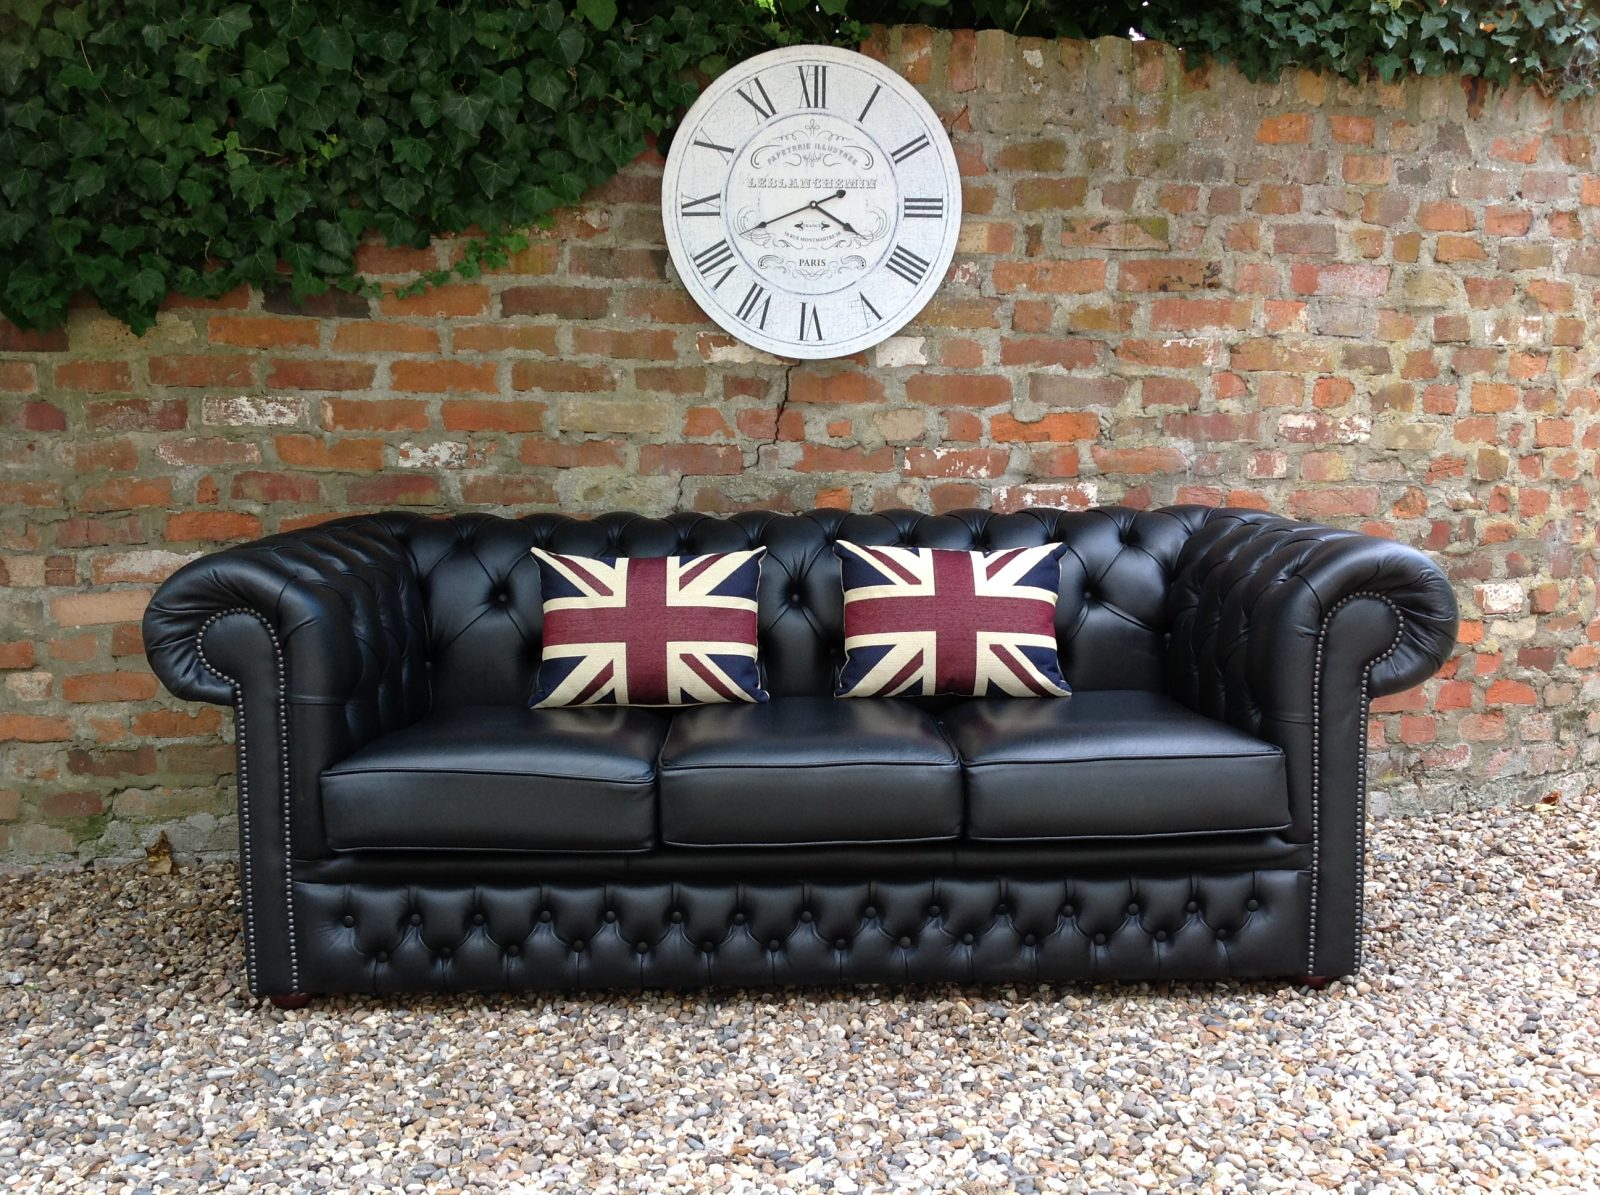 Chesterfields at the Boathouse – Vintage Chesterfield Sofas